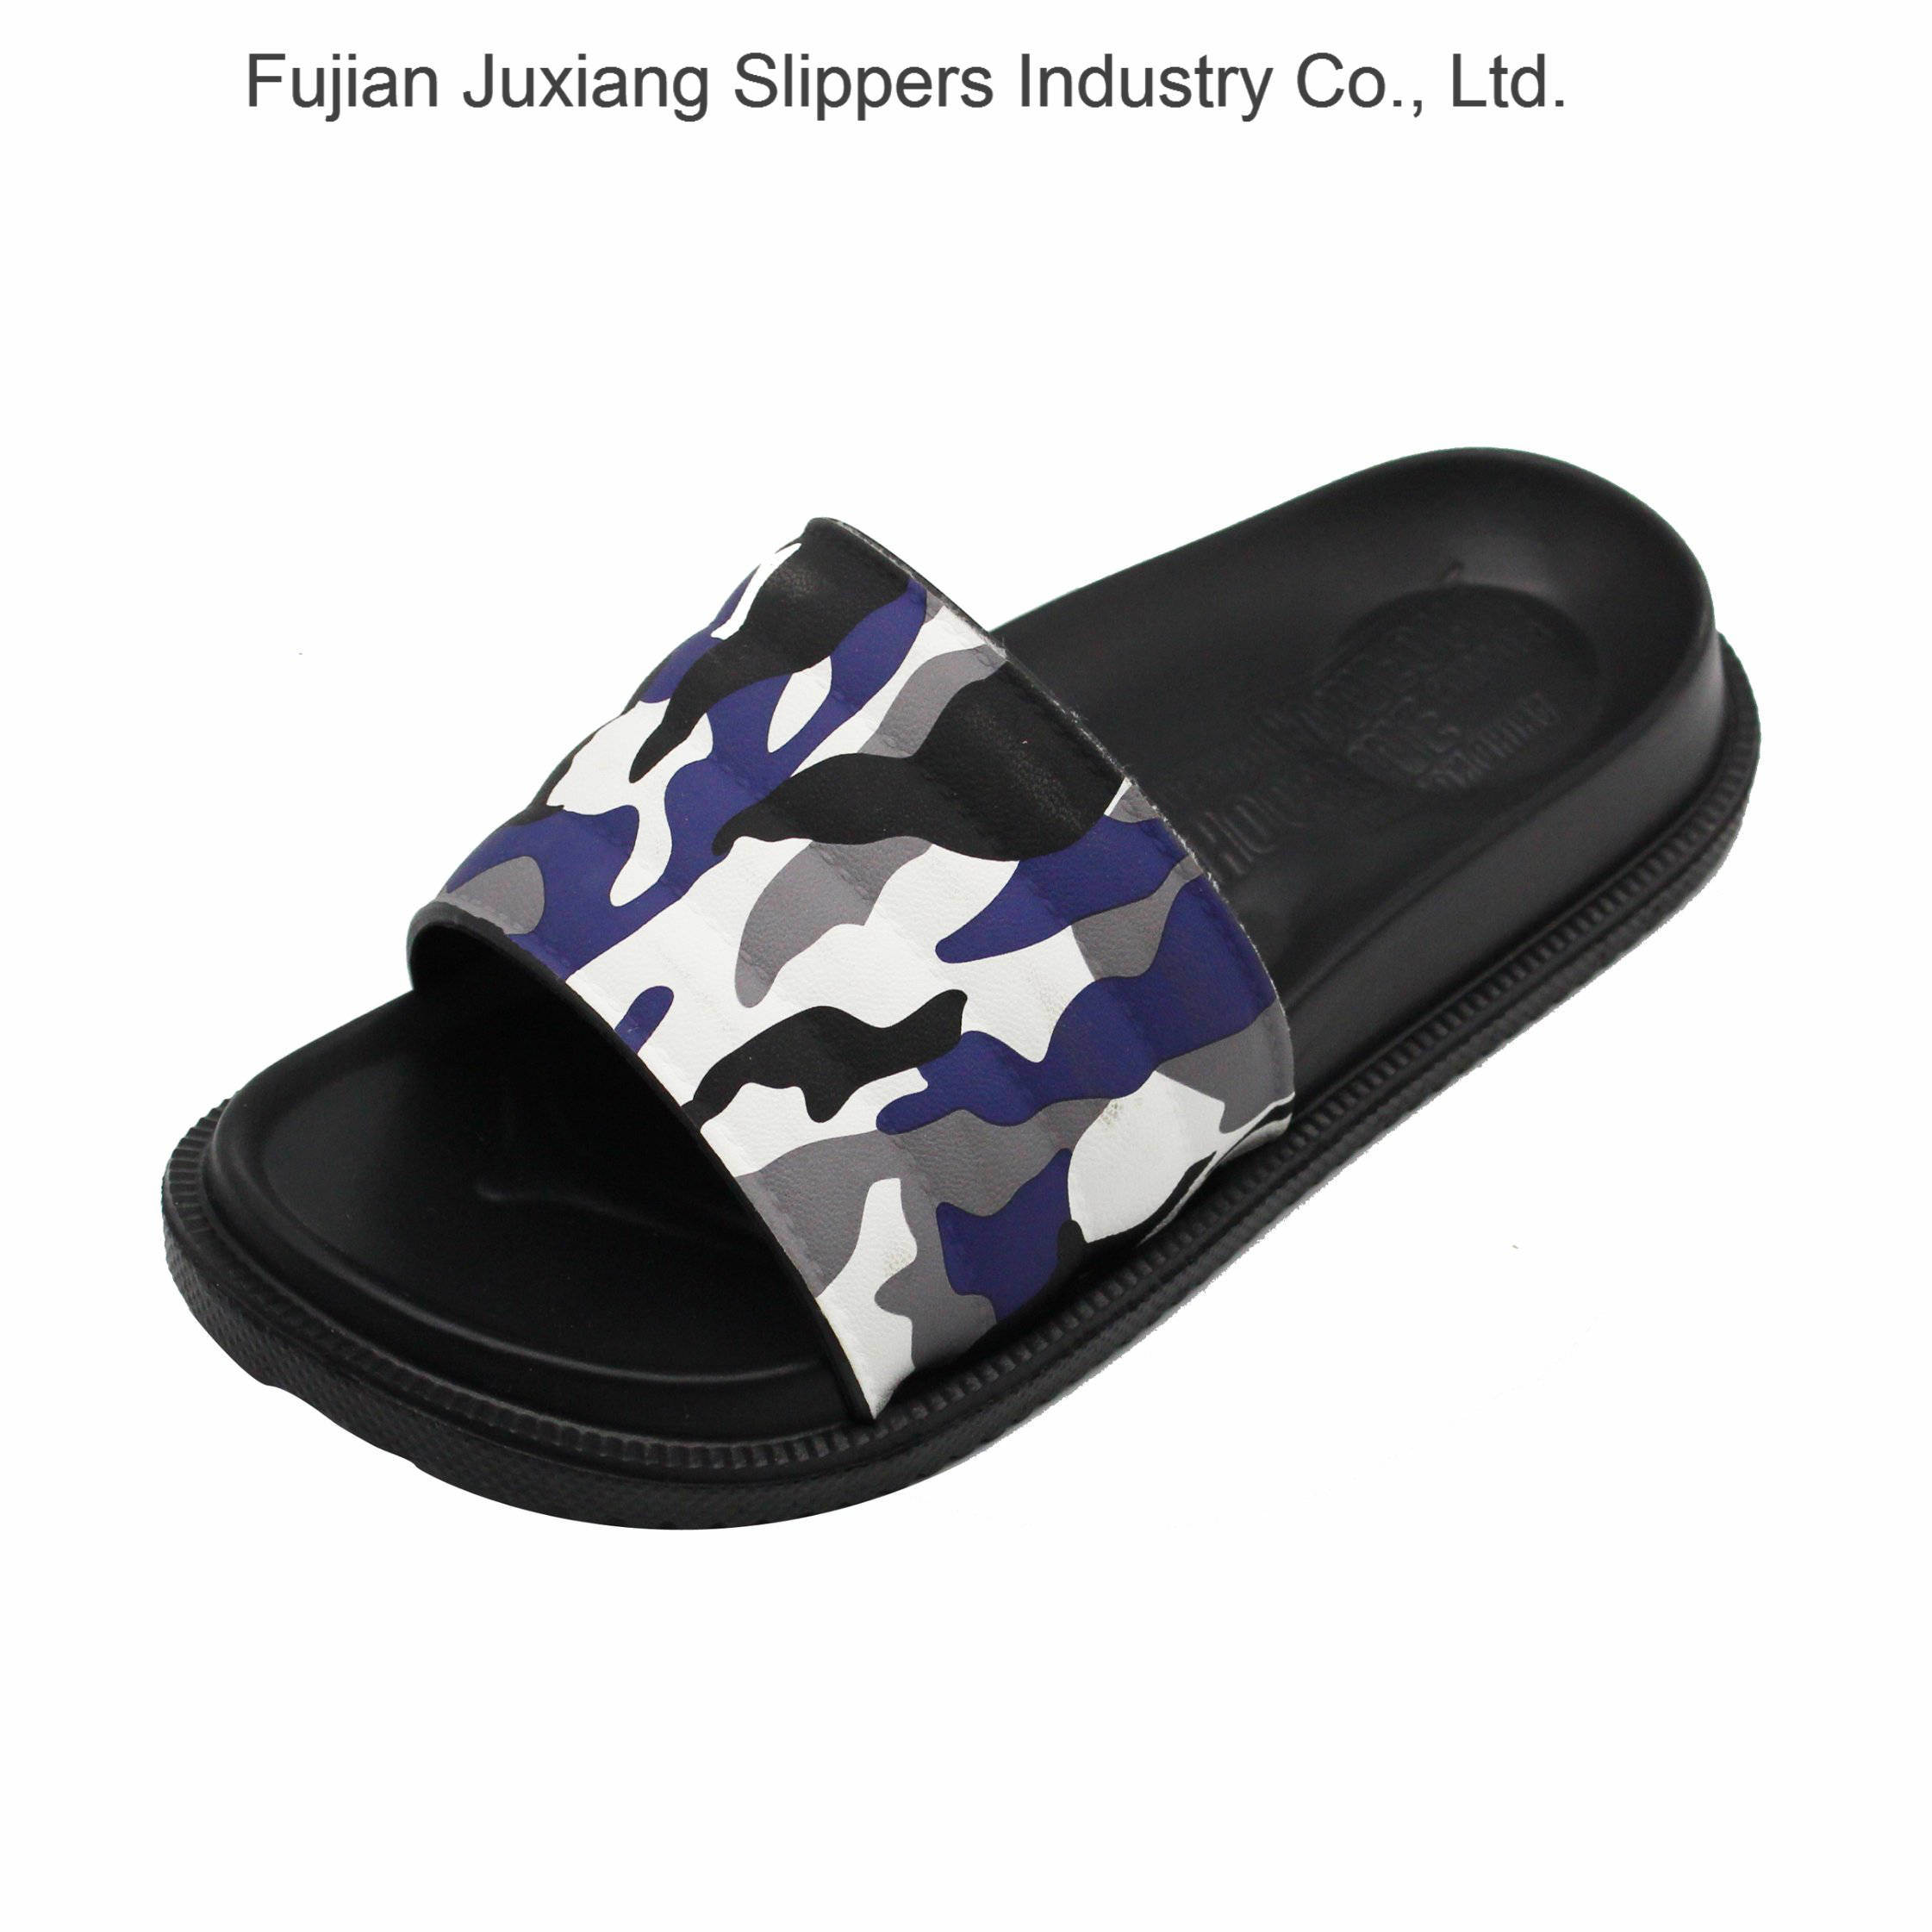 49a5a51f6e7ee [Hot Item] Latest Men Camouflage Slippers with EVA Outsole